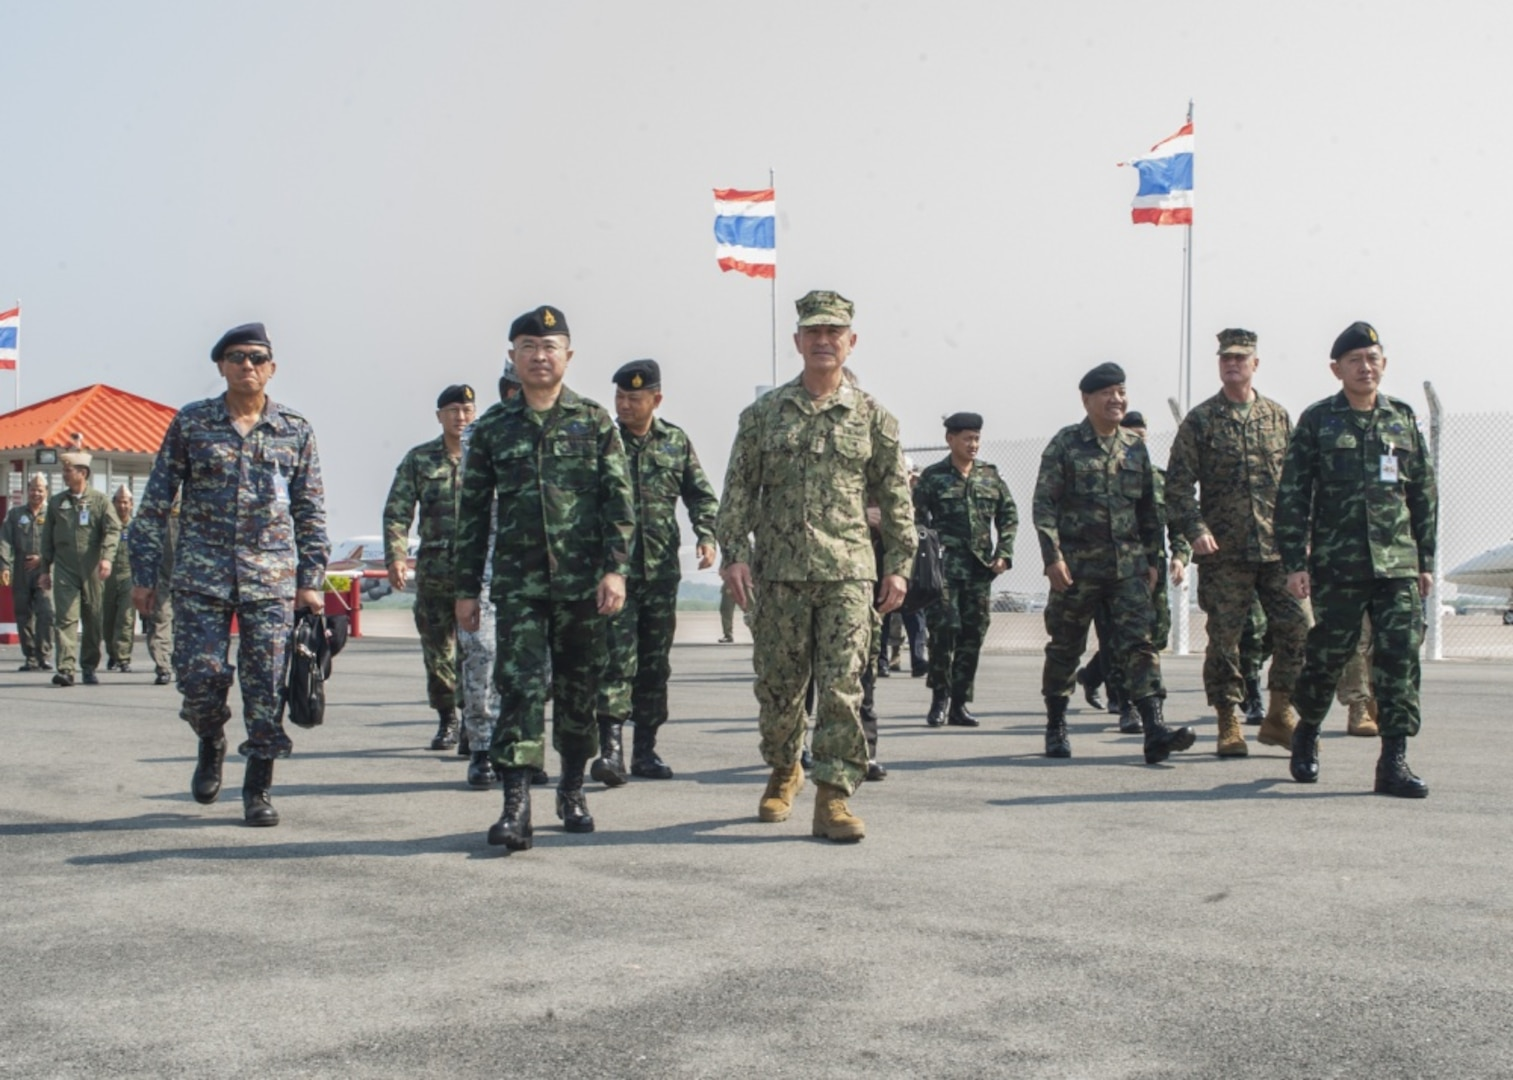 Thai Chief of Defence Forces Gen. Surapong Suwana-adth and U.S. Pacific Command Commander, Adm. Harry Harris, arrived at the Utapao Royal Thai Naval Air Division air field for the official opening ceremony of Cobra Gold, Feb. 14,  2017. Cobra Gold, in its 36th iteration, is the largest Theater Security Cooperation exercise in the Indo-Asia-Pacific. This year's focus is to advance regional security and ensure effective responses to regional crises by bringing together a robust multinational force to address shared goals and security commitments in the Indo-Asia-Pacific region.